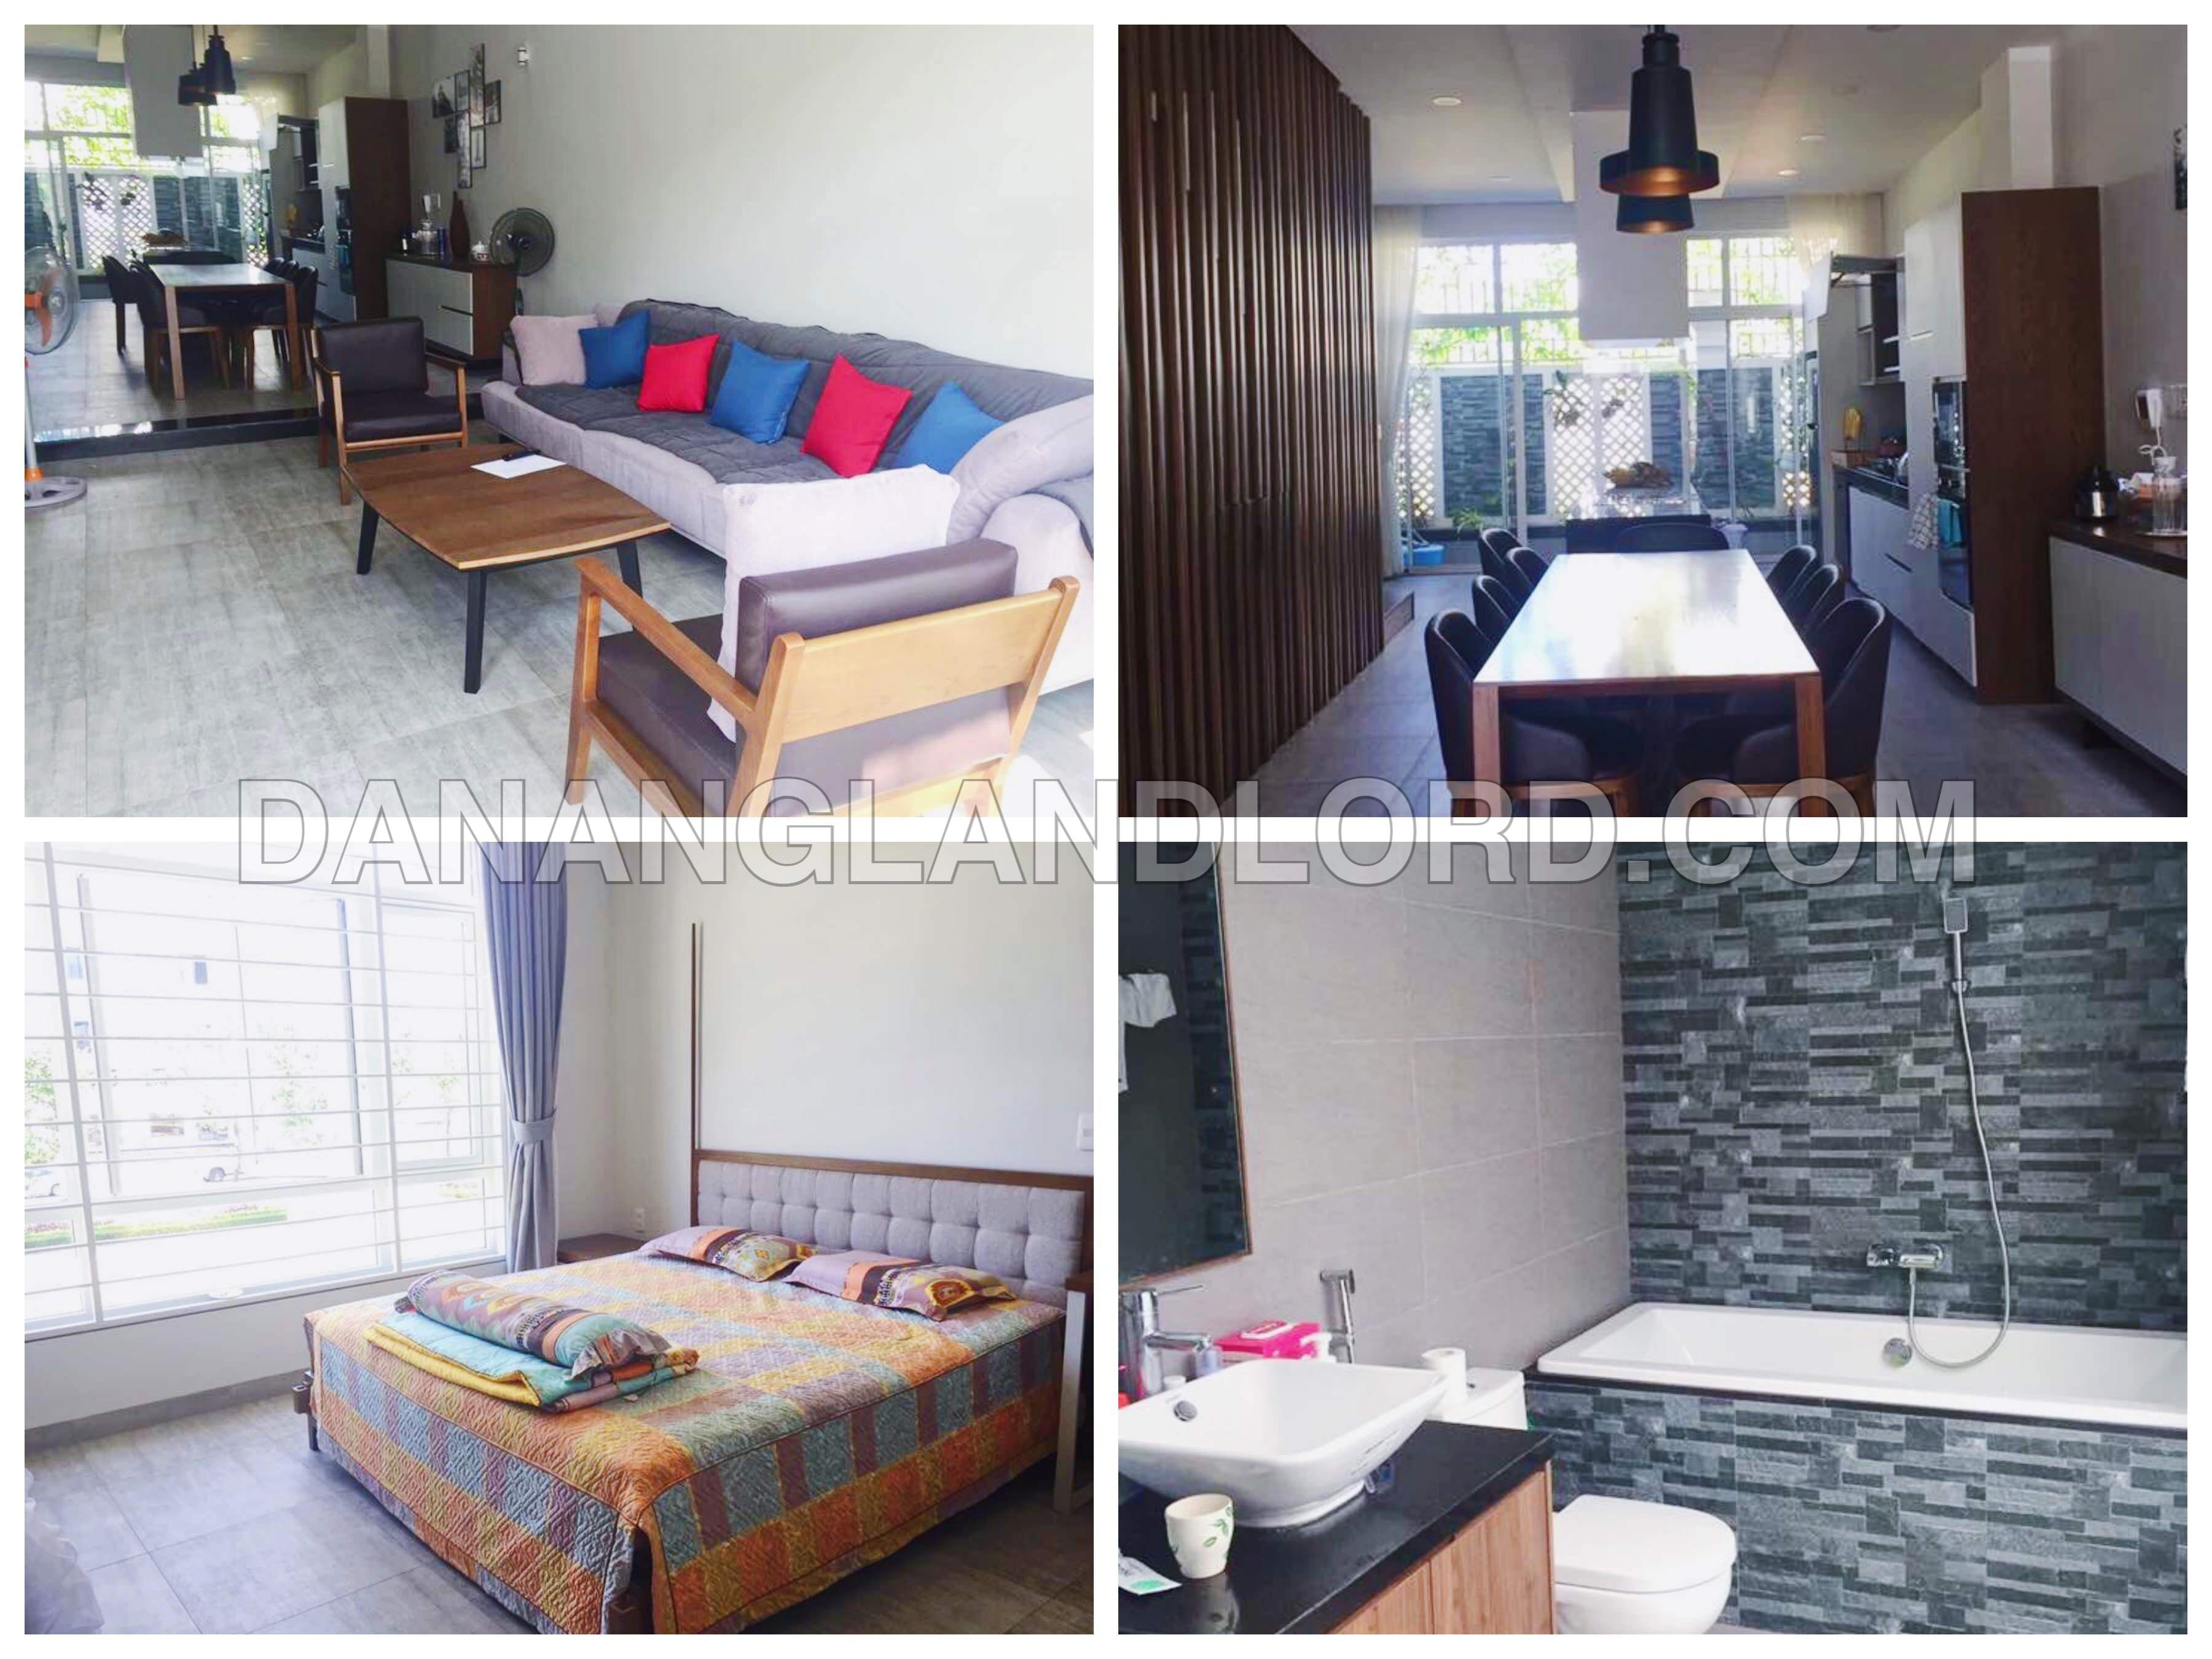 3 bedroom house for rent in Euro Village Da Nang